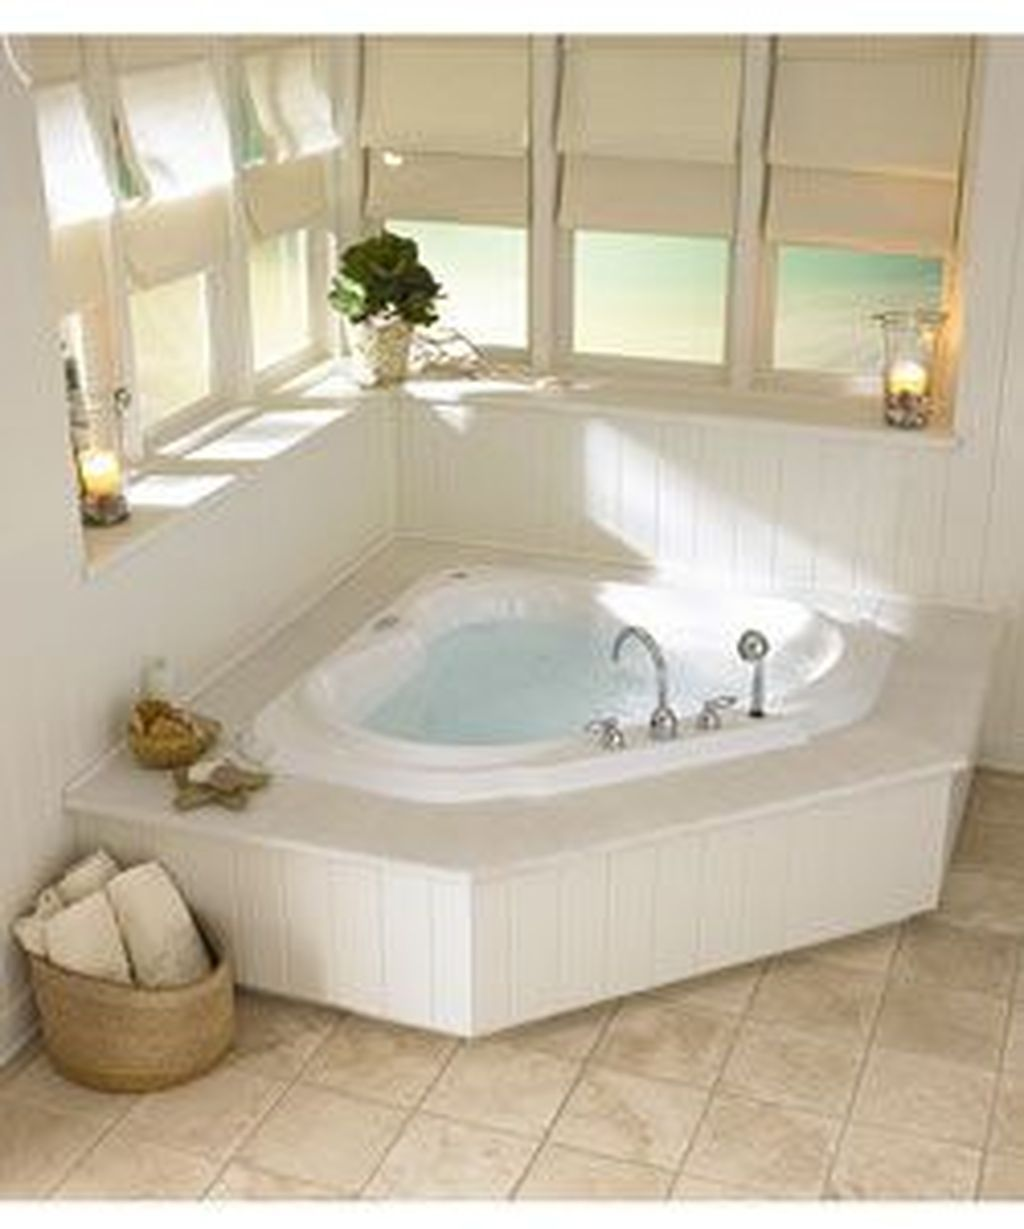 20 Totally Adorable Garden Tub Decorating Ideas Corner Jacuzzi